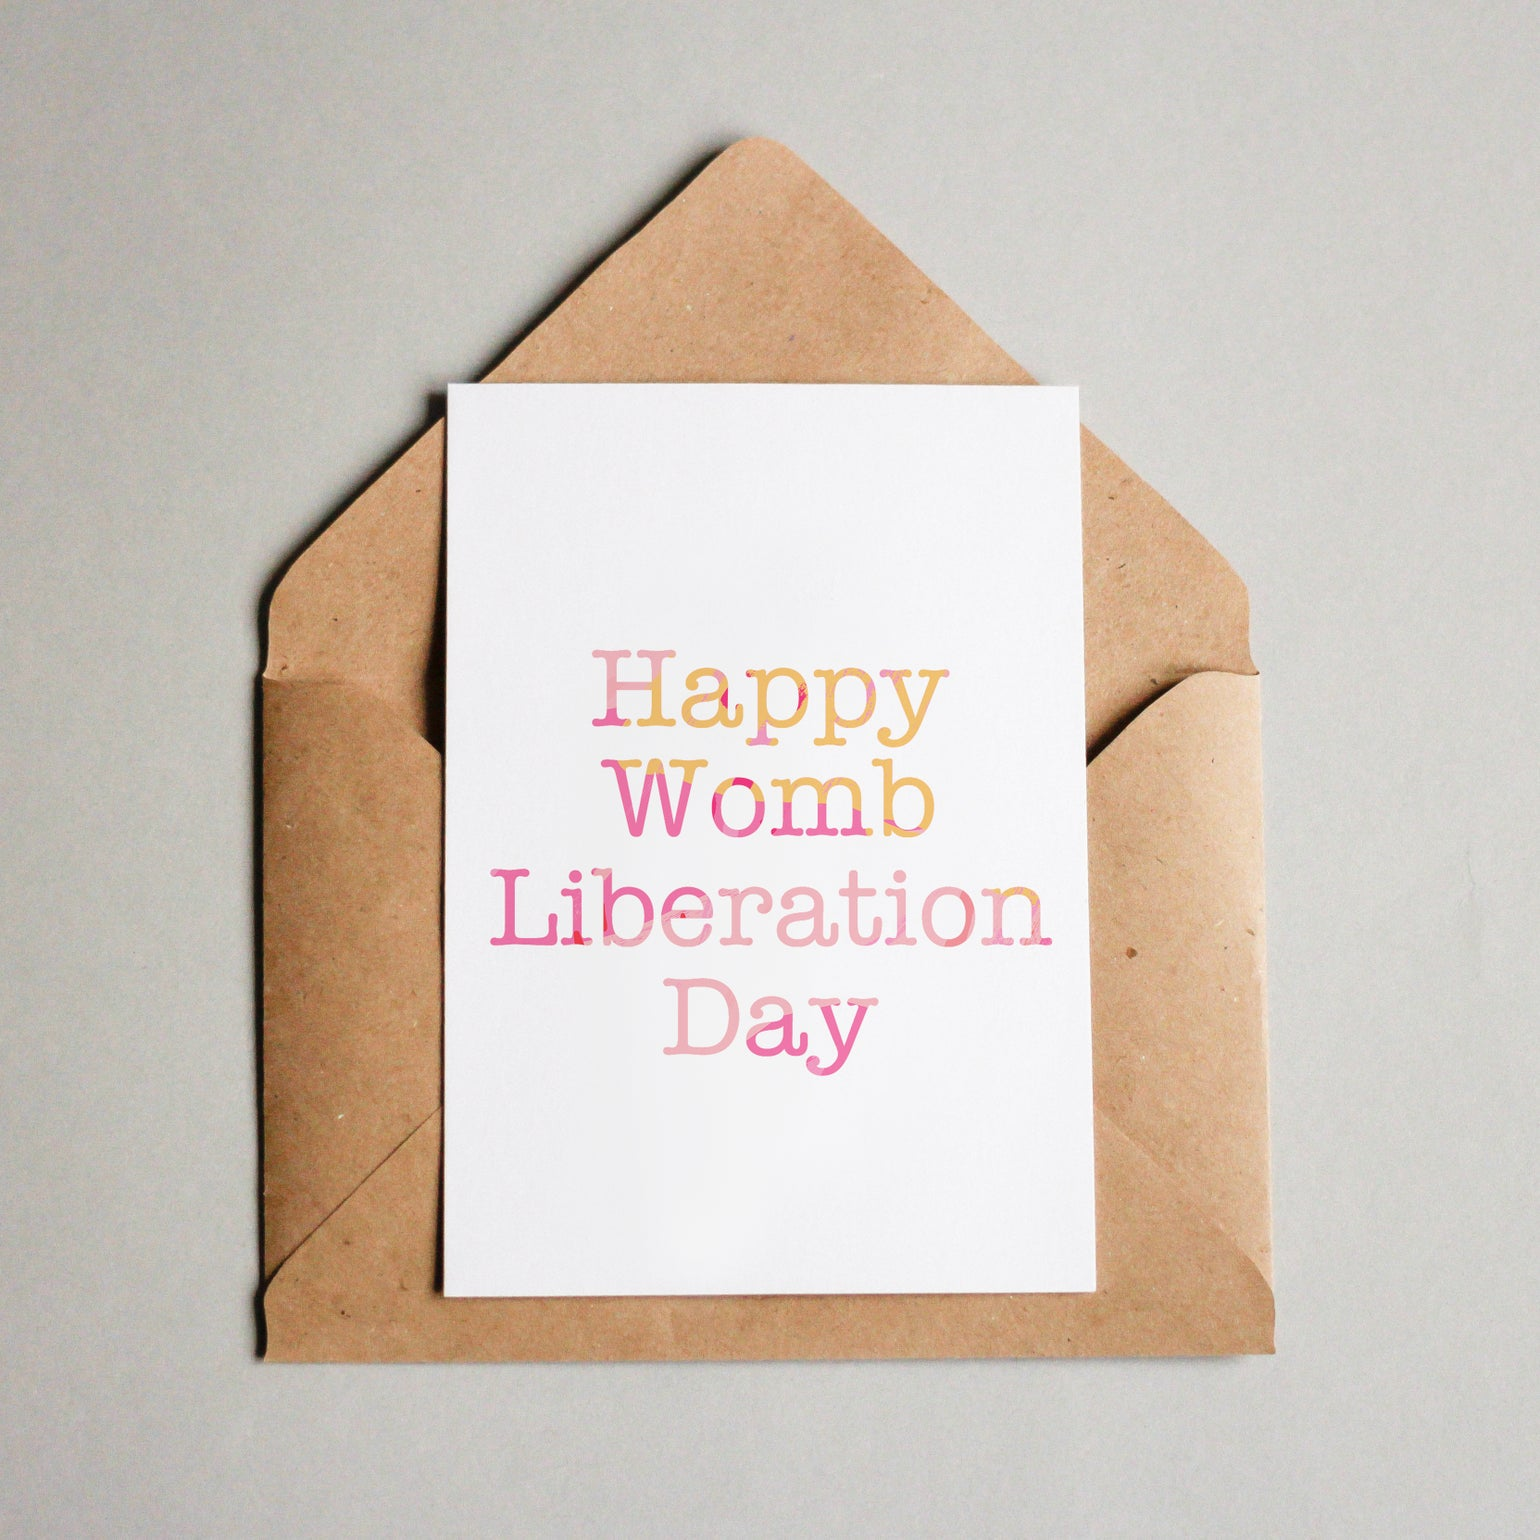 Image of Happy womb liberation day